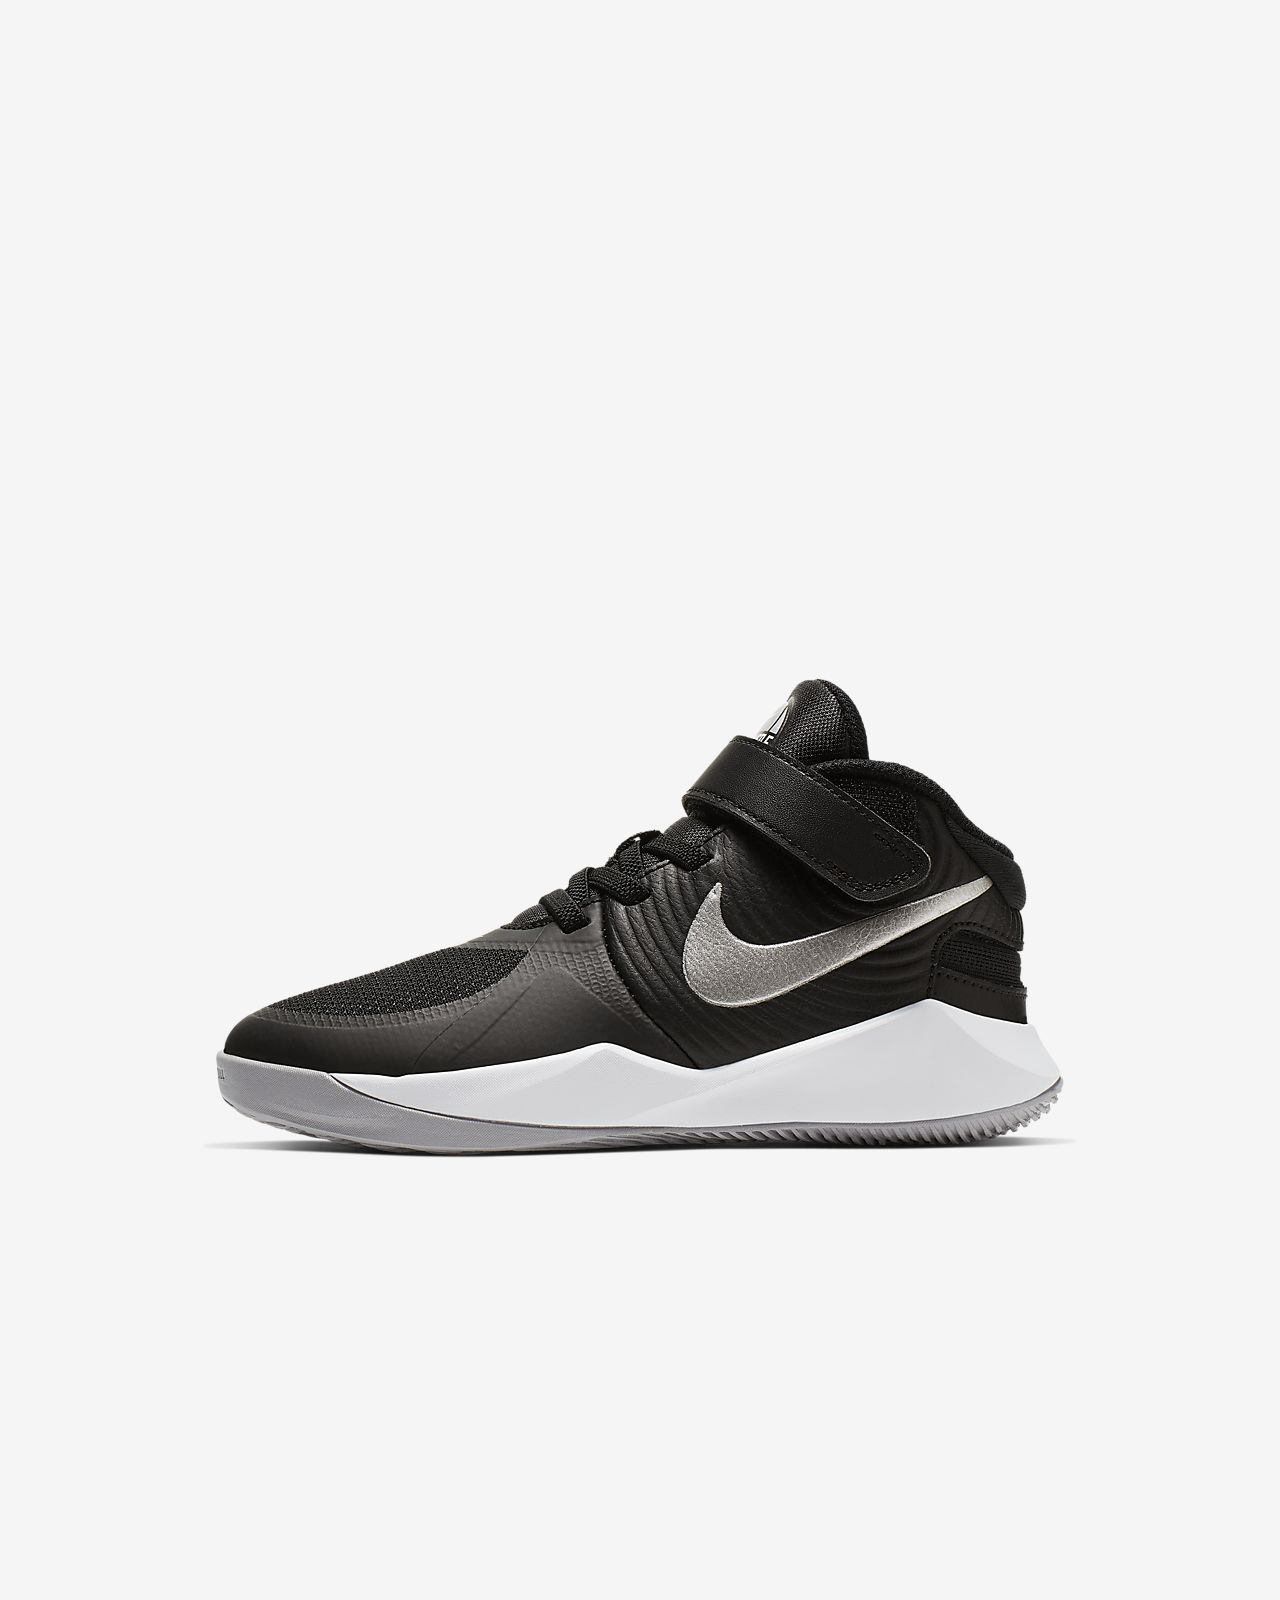 Nike Team Hustle D 9 FlyEase Younger Kids' Shoe